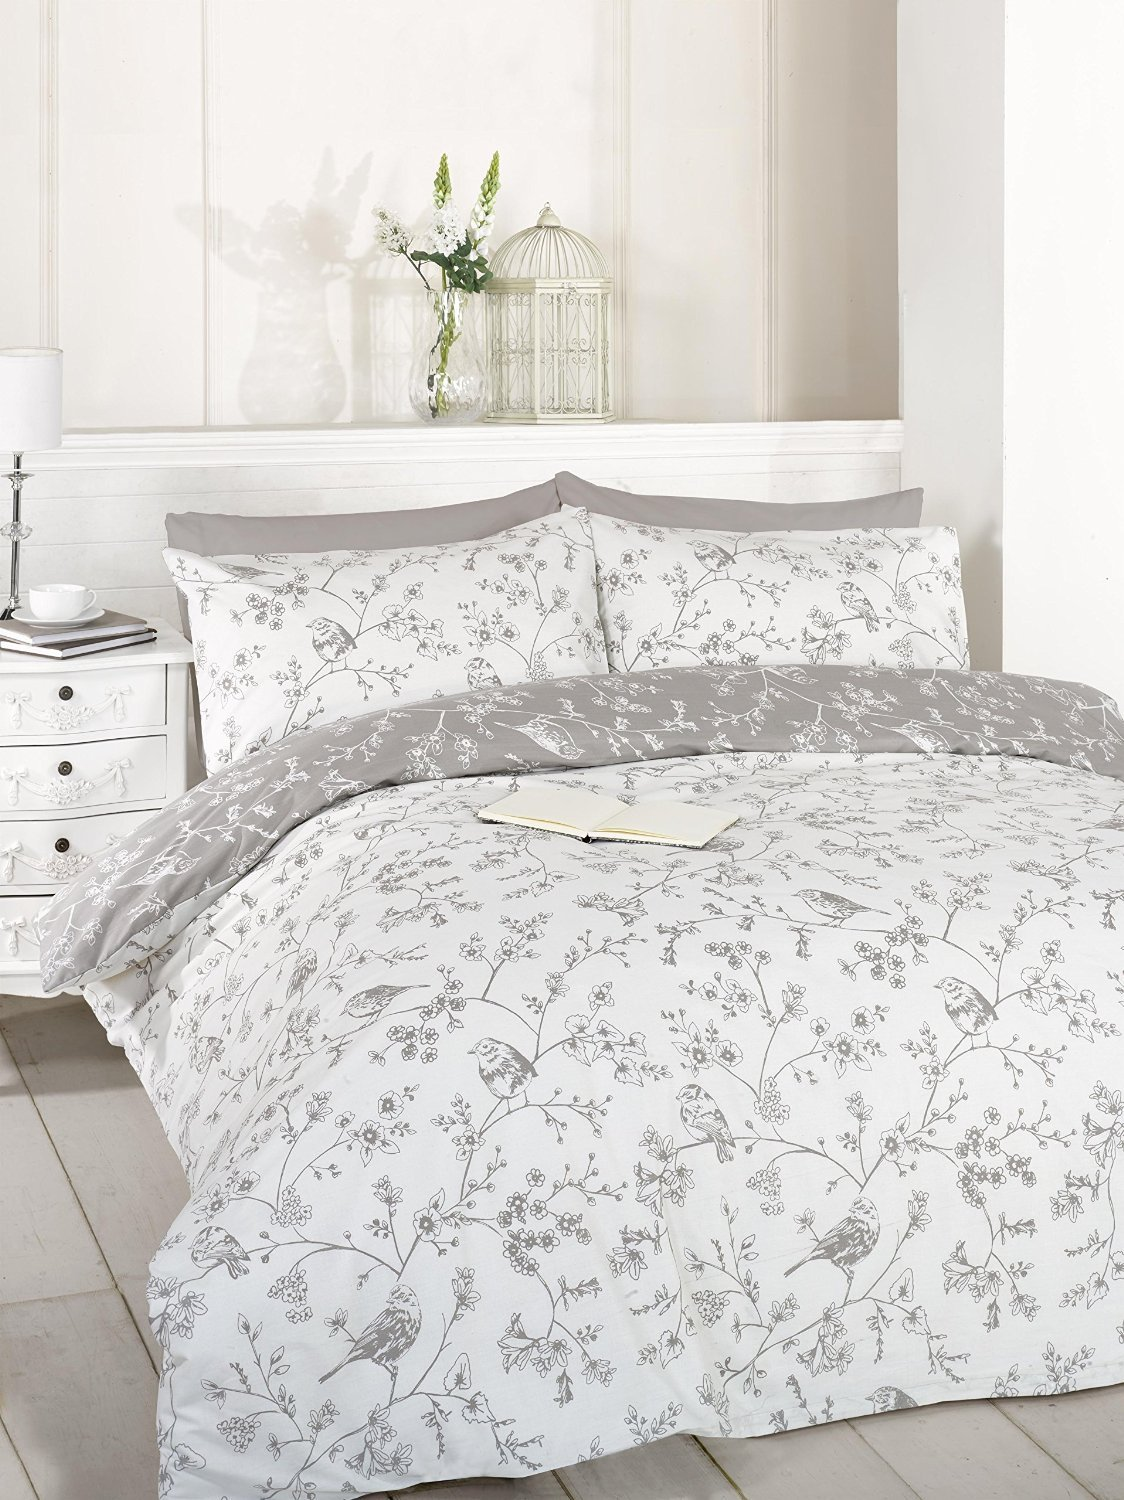 gold white magic super covers insert bedding cotton best cover size quilt egyptian asda bird grey duvet in elephant marvellous top luxury with toddler king pintuck